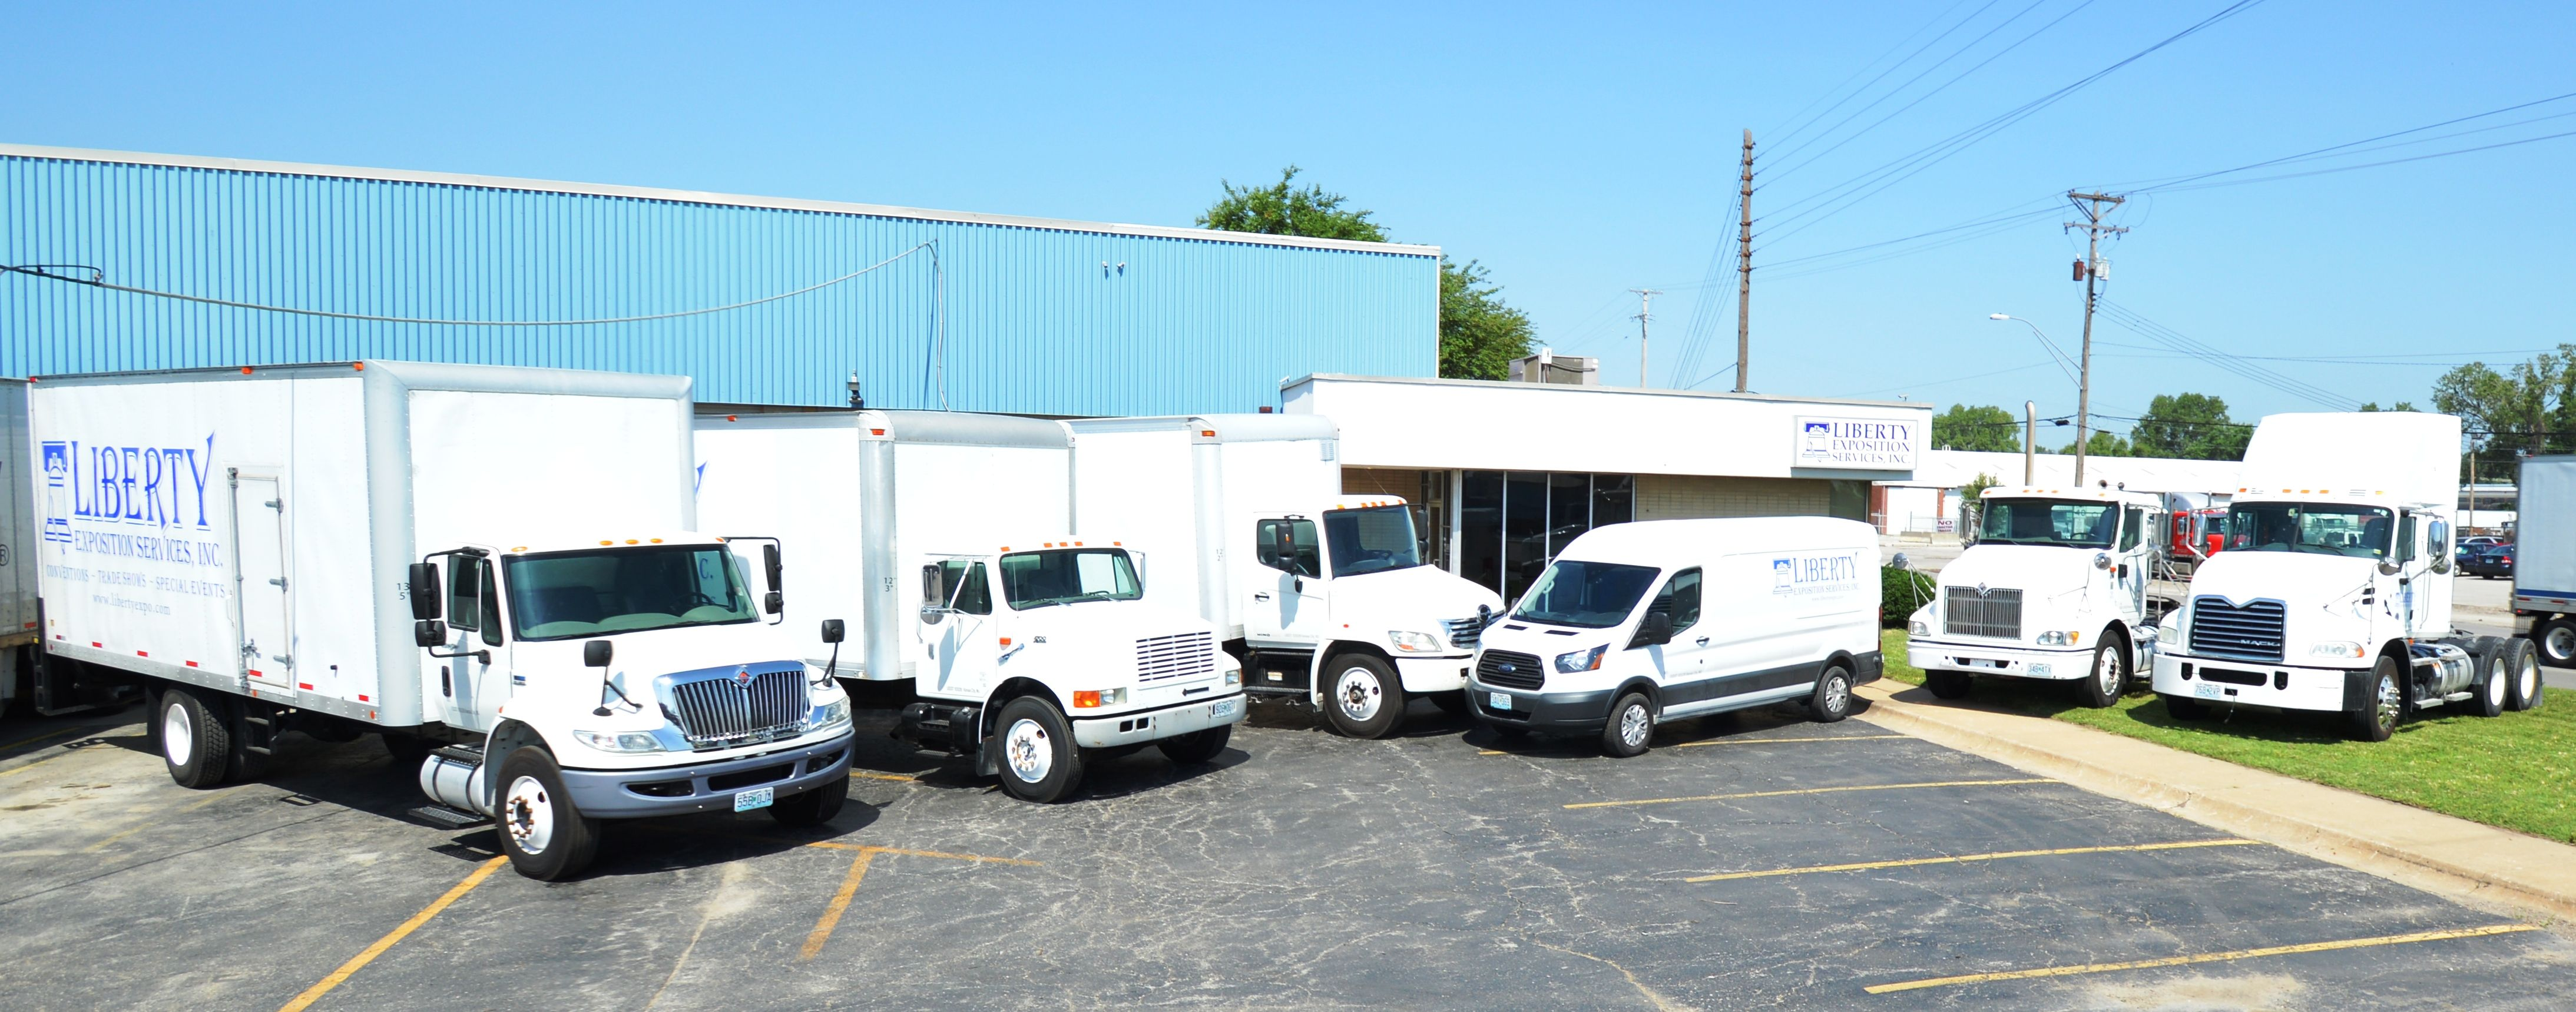 Liberty Expo S Truck Fleet Including Two Straight Trucks One Box